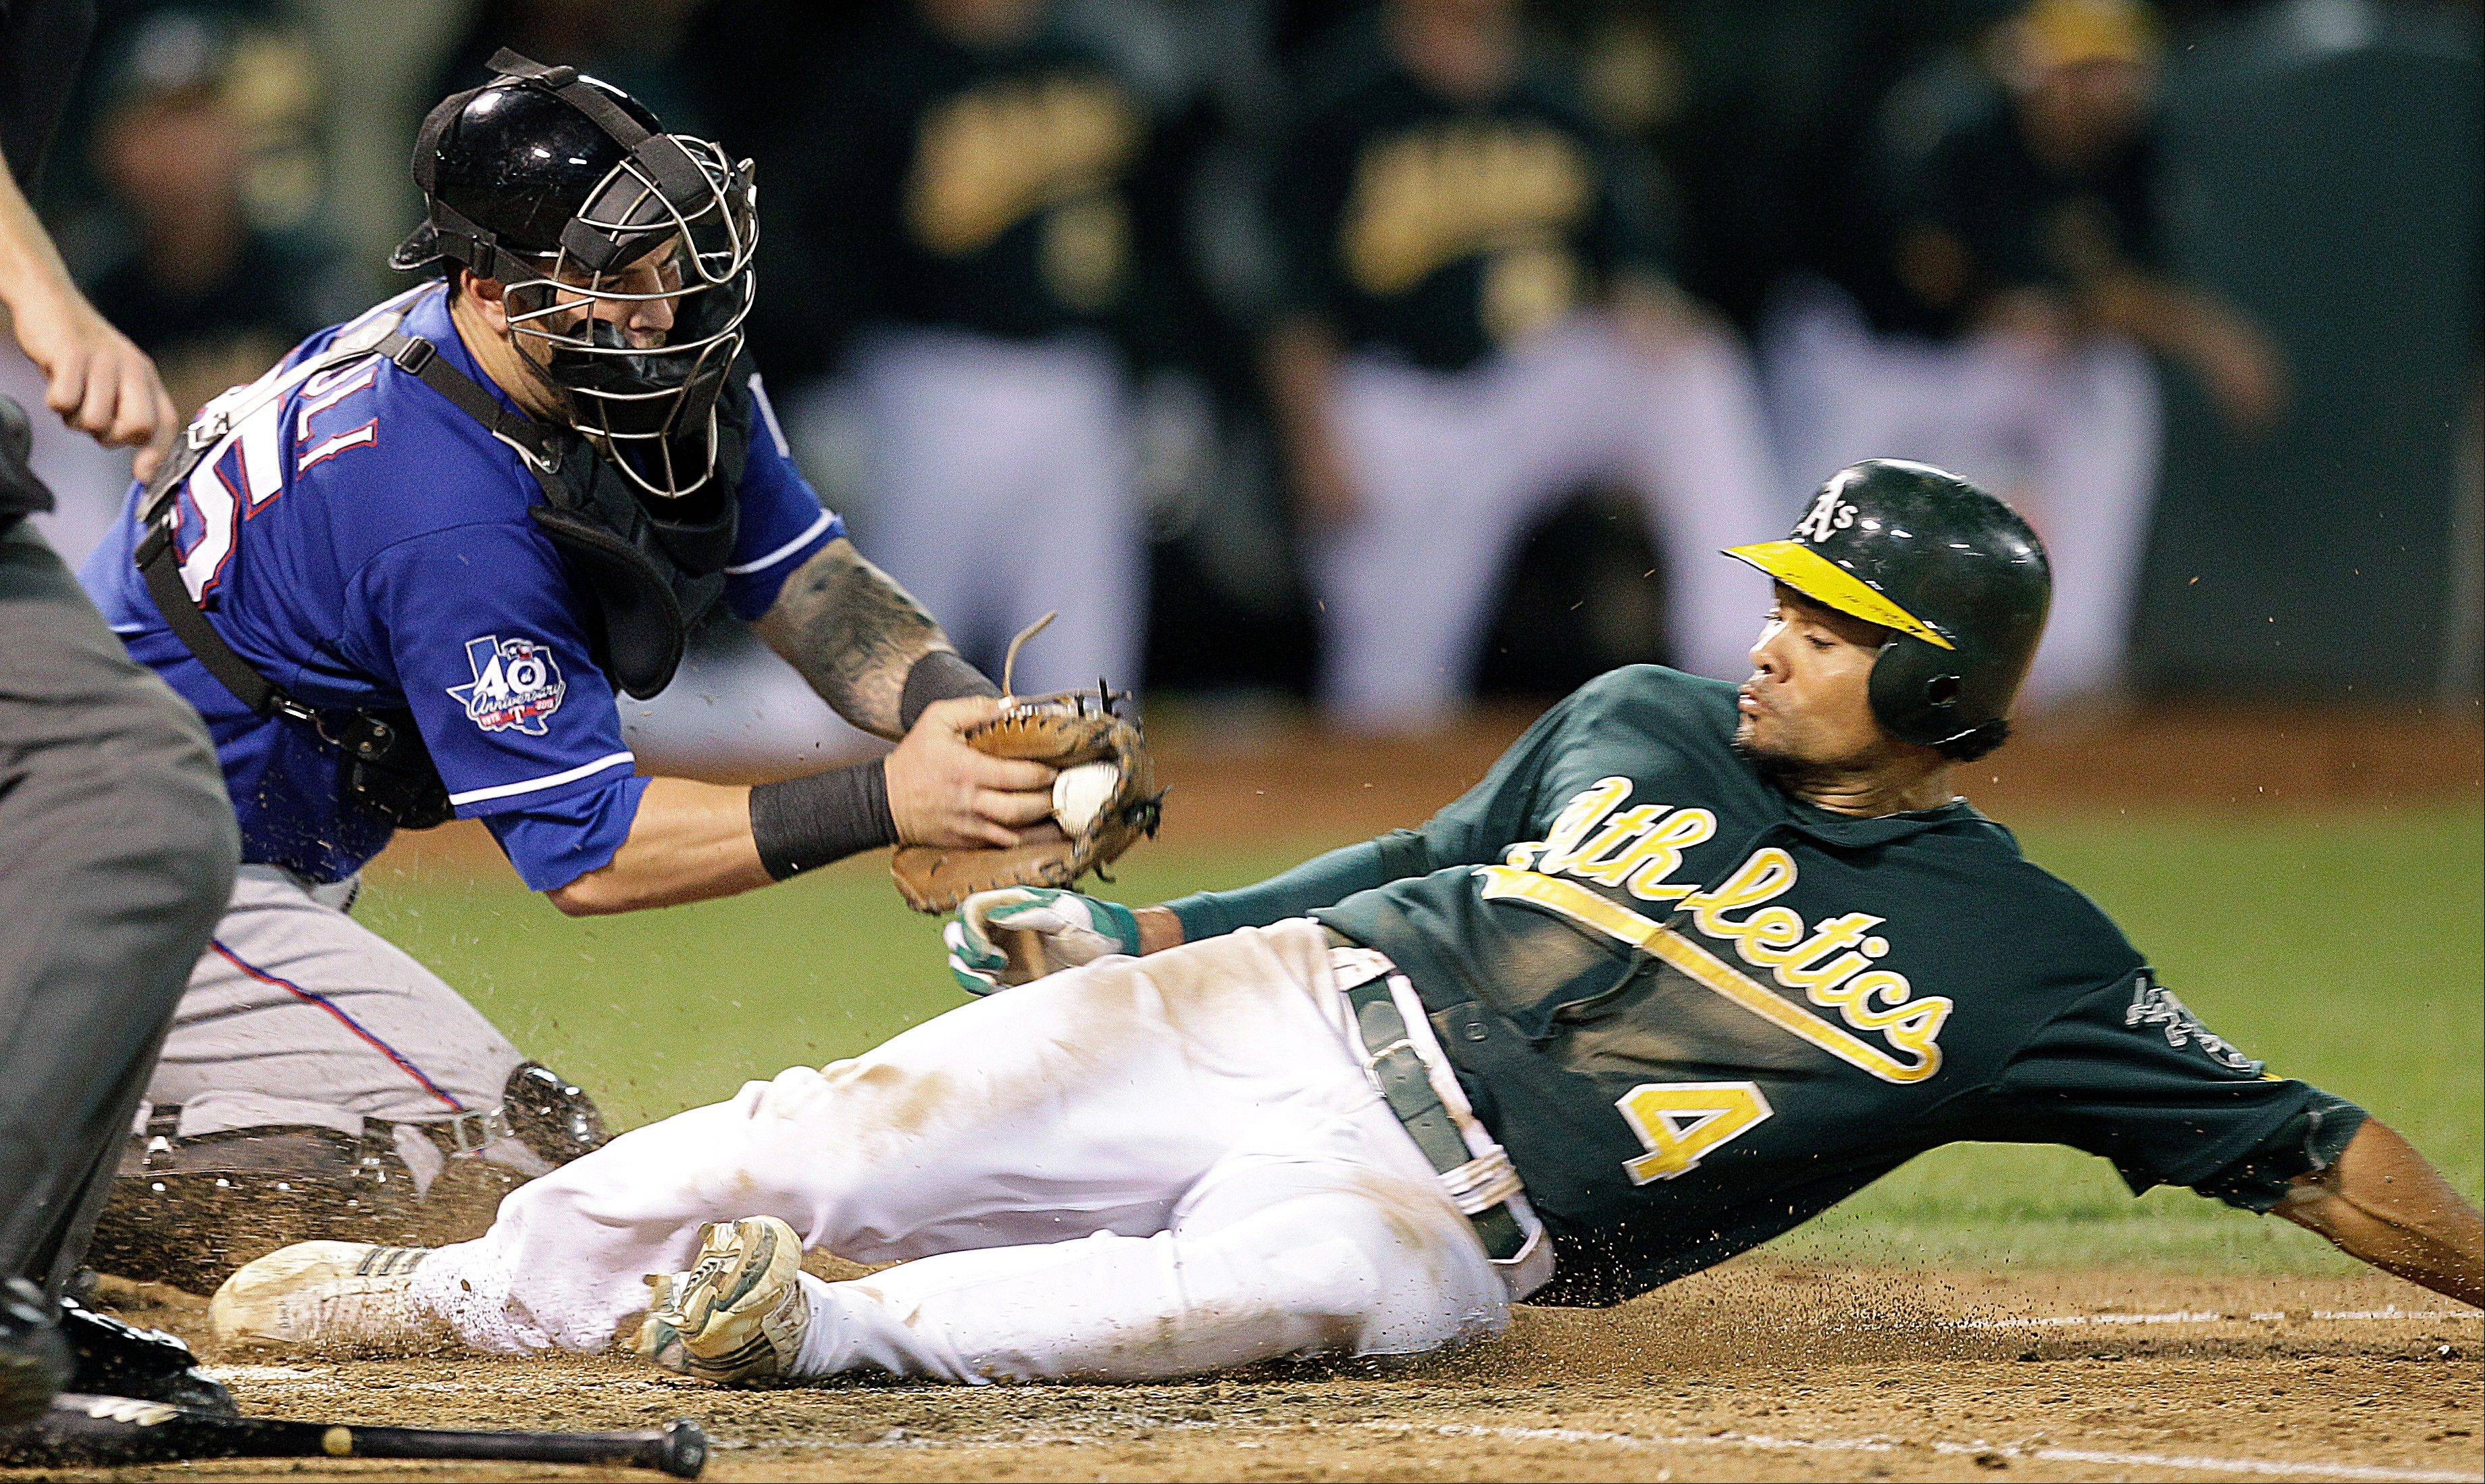 The Athletics' Coco Crisp scores past the tag of Texas Rangers catcher Mike Napoli in the fifth inning Monday in Oakland, Calif.